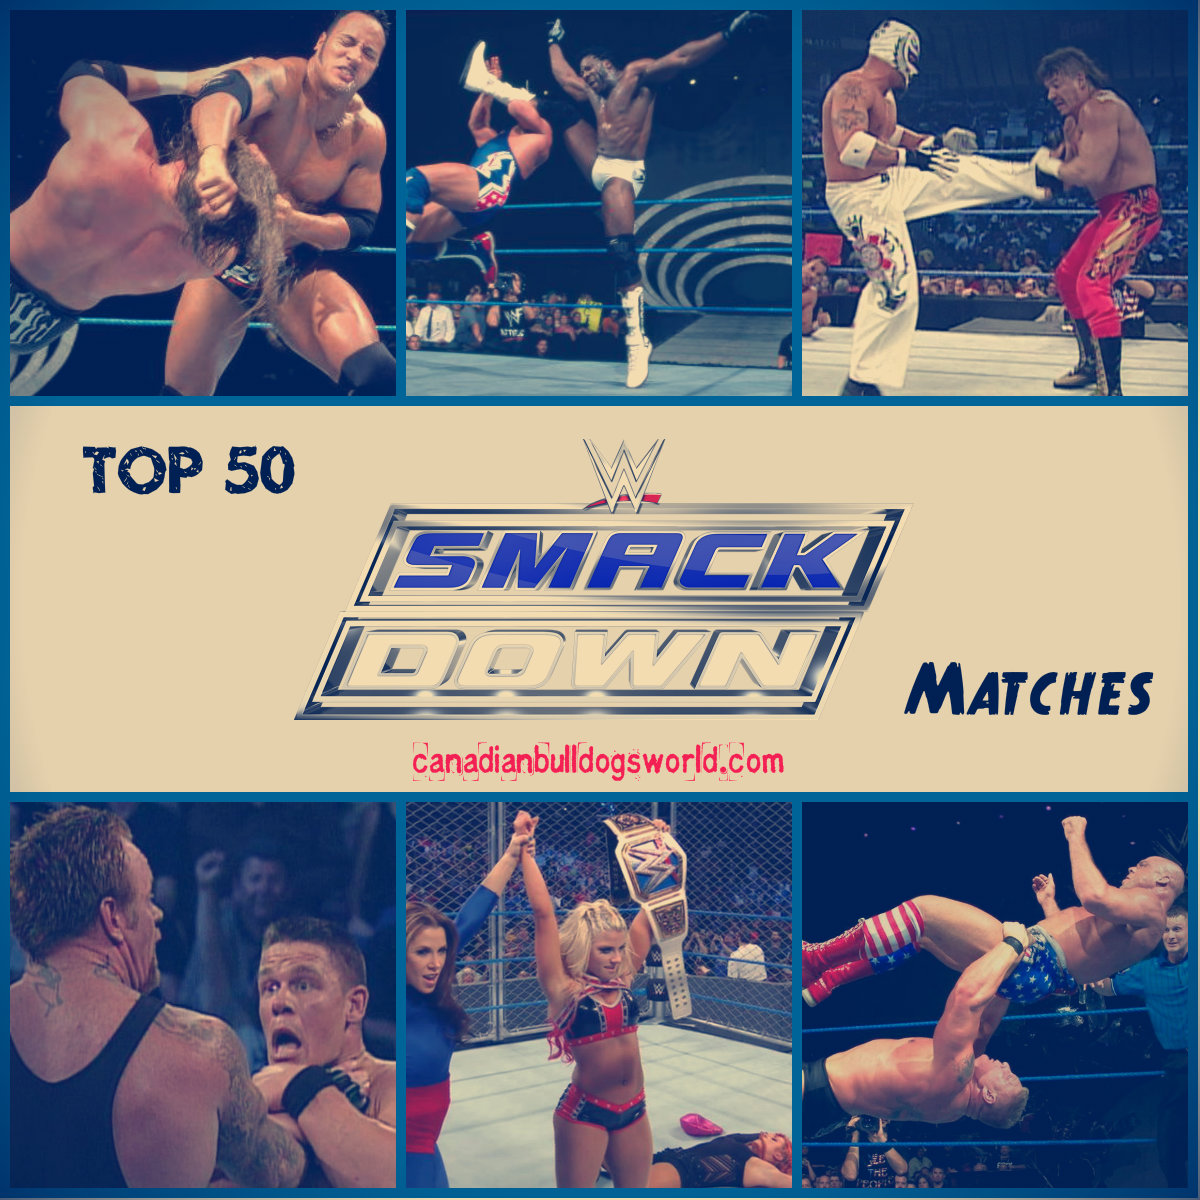 Top 50 SmackDown Matches